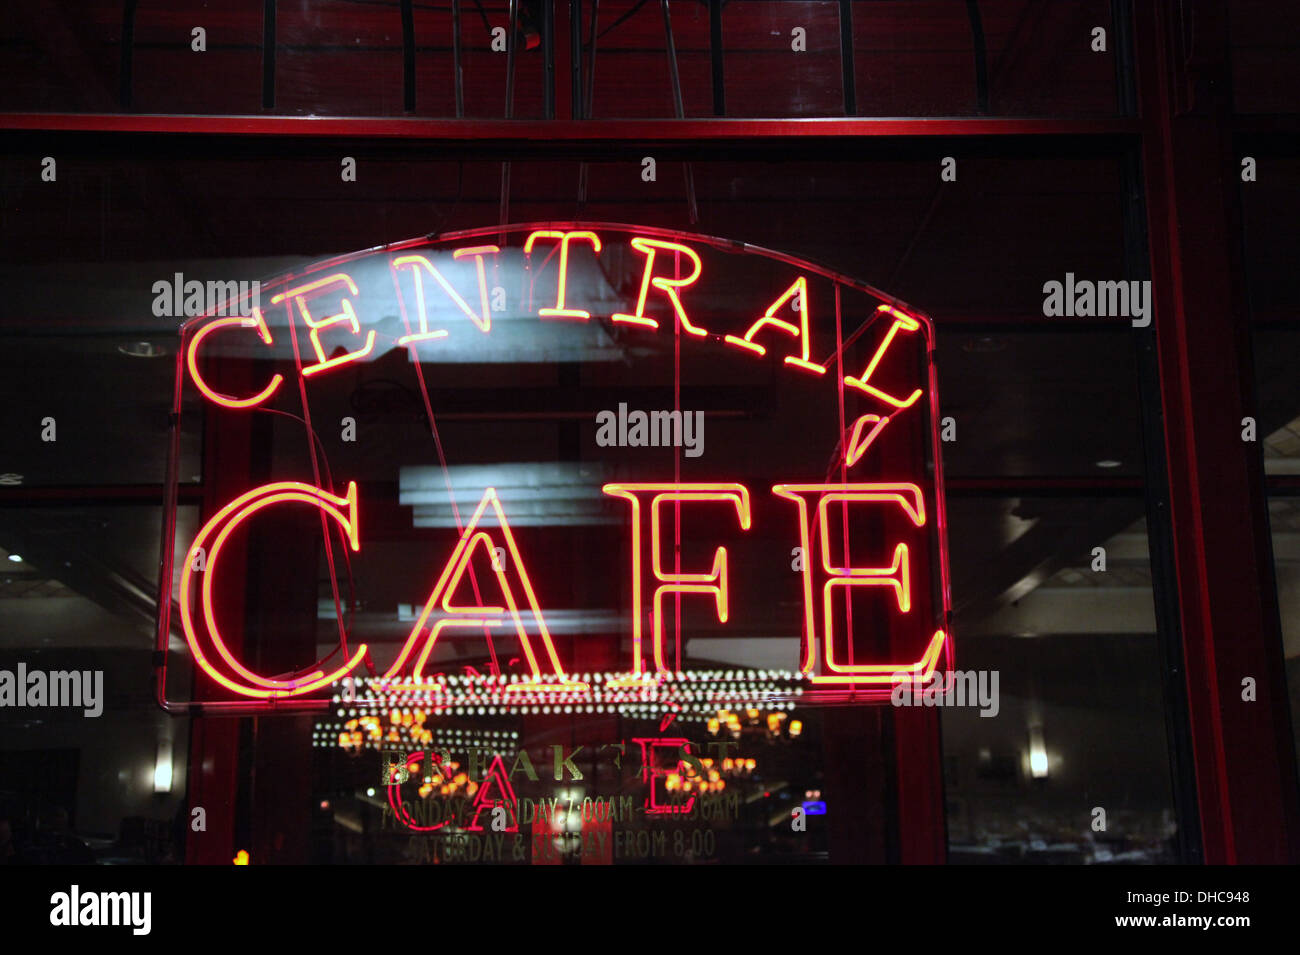 Central Cafe in Pershing Square at the heart of New York City Stock Photo